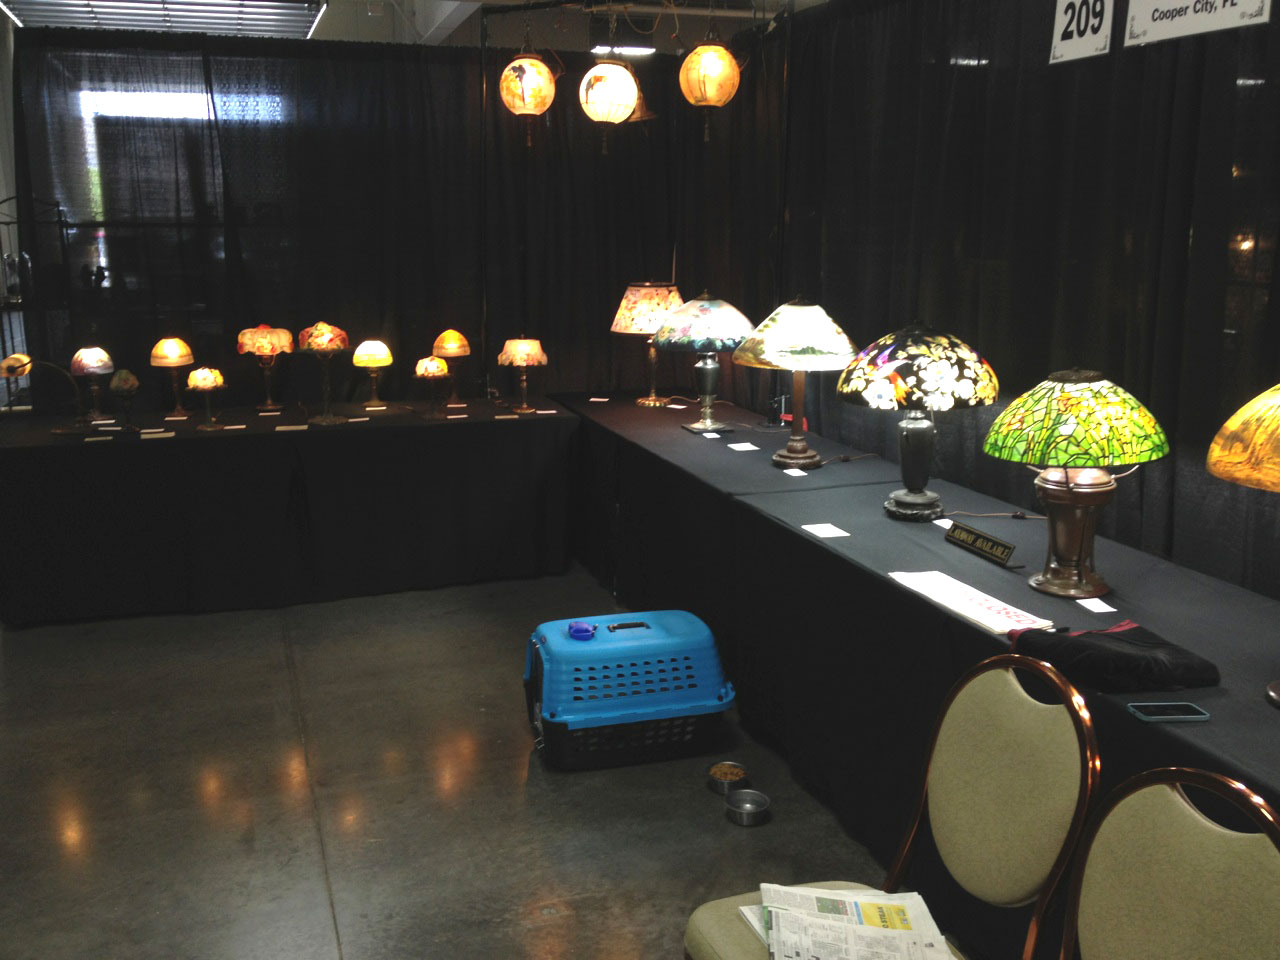 Alan and Adele Grodsky have a booth full of Handel and Pairpoint lamps